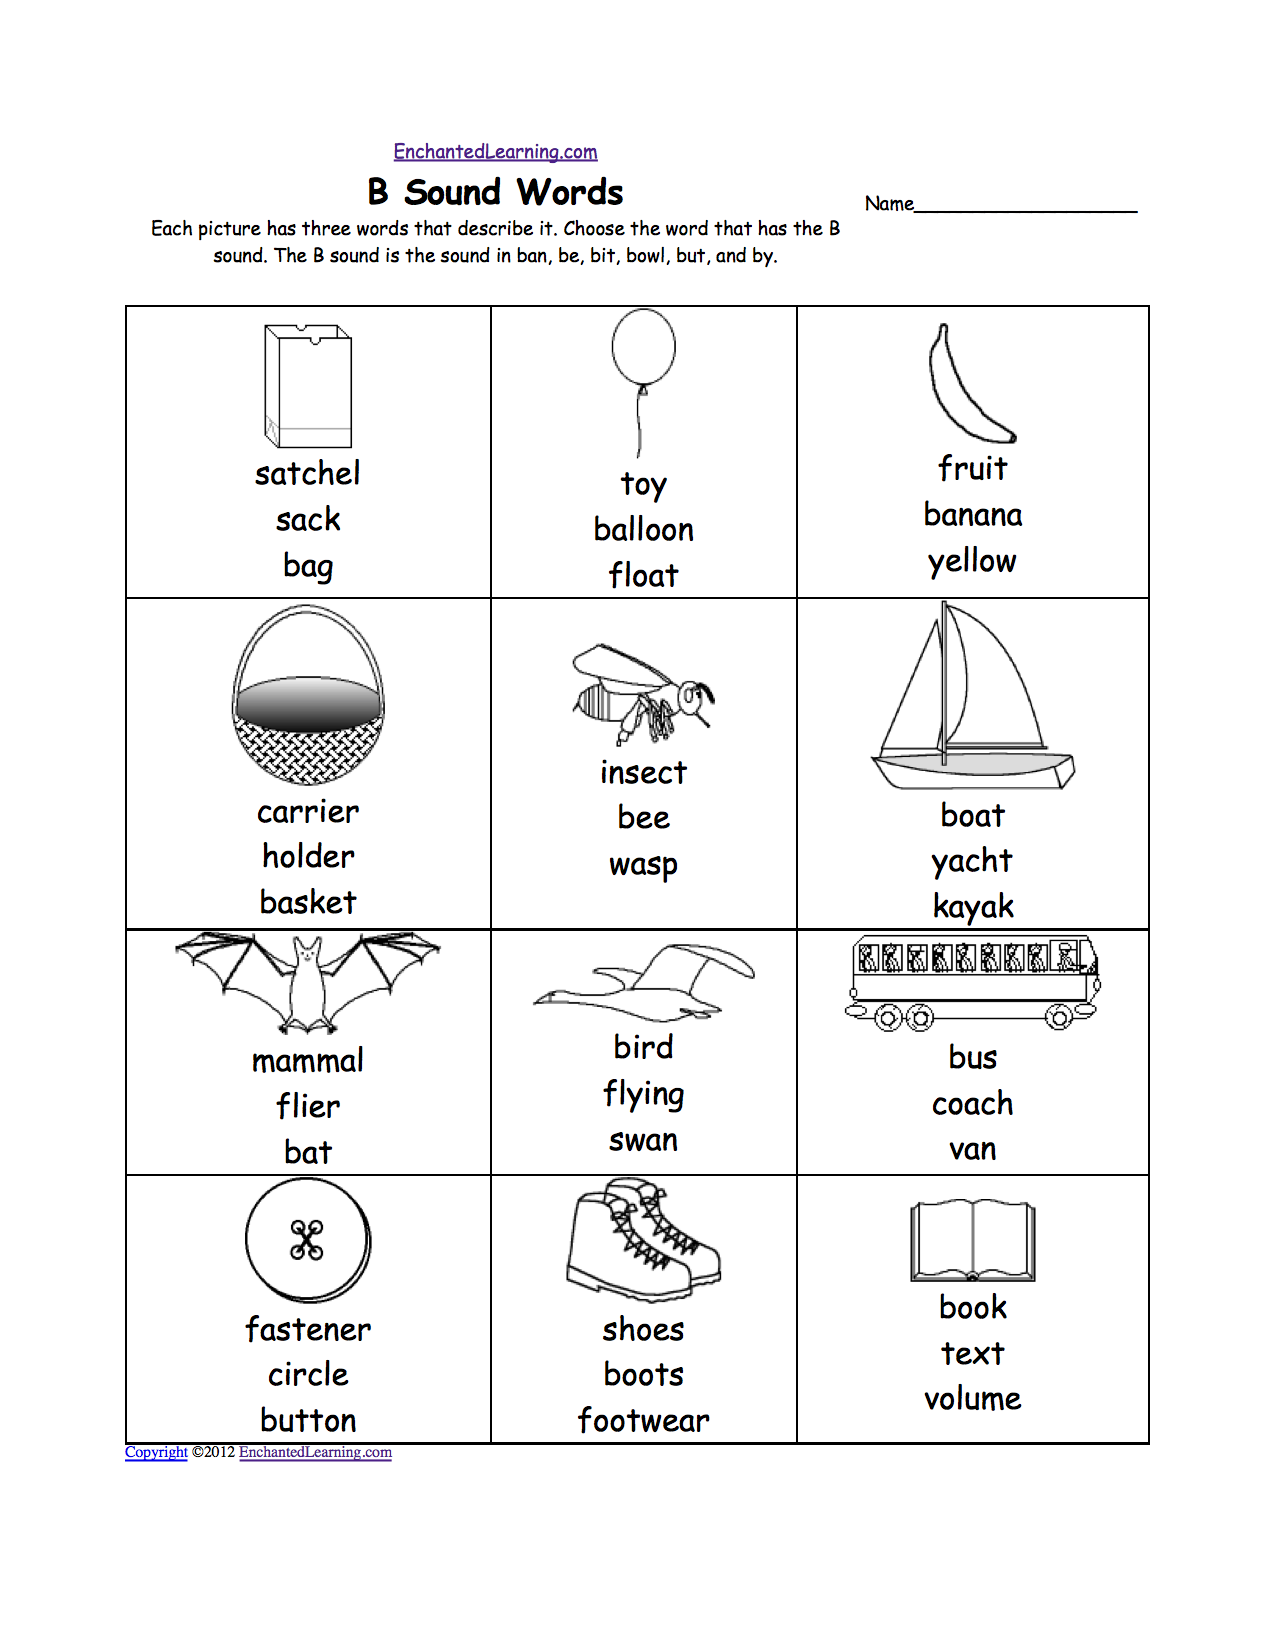 Weirdmailus  Wonderful Phonics Worksheets Multiple Choice Worksheets To Print  With Entrancing Quotbquot Sound Phonics Worksheet Multiple Choice Each Picture Has Three Words That Describe It Choose The Word That Has A Quotbquot Sound The Quotbquot Sound Is The Sound  With Appealing Tracing Sight Words Worksheets Also Food Label Worksheets In Addition Us Symbols Worksheet And Input And Output Worksheets As Well As American Industrial Revolution Worksheets Additionally Basic Geometry Worksheets Pdf From Enchantedlearningcom With Weirdmailus  Entrancing Phonics Worksheets Multiple Choice Worksheets To Print  With Appealing Quotbquot Sound Phonics Worksheet Multiple Choice Each Picture Has Three Words That Describe It Choose The Word That Has A Quotbquot Sound The Quotbquot Sound Is The Sound  And Wonderful Tracing Sight Words Worksheets Also Food Label Worksheets In Addition Us Symbols Worksheet From Enchantedlearningcom